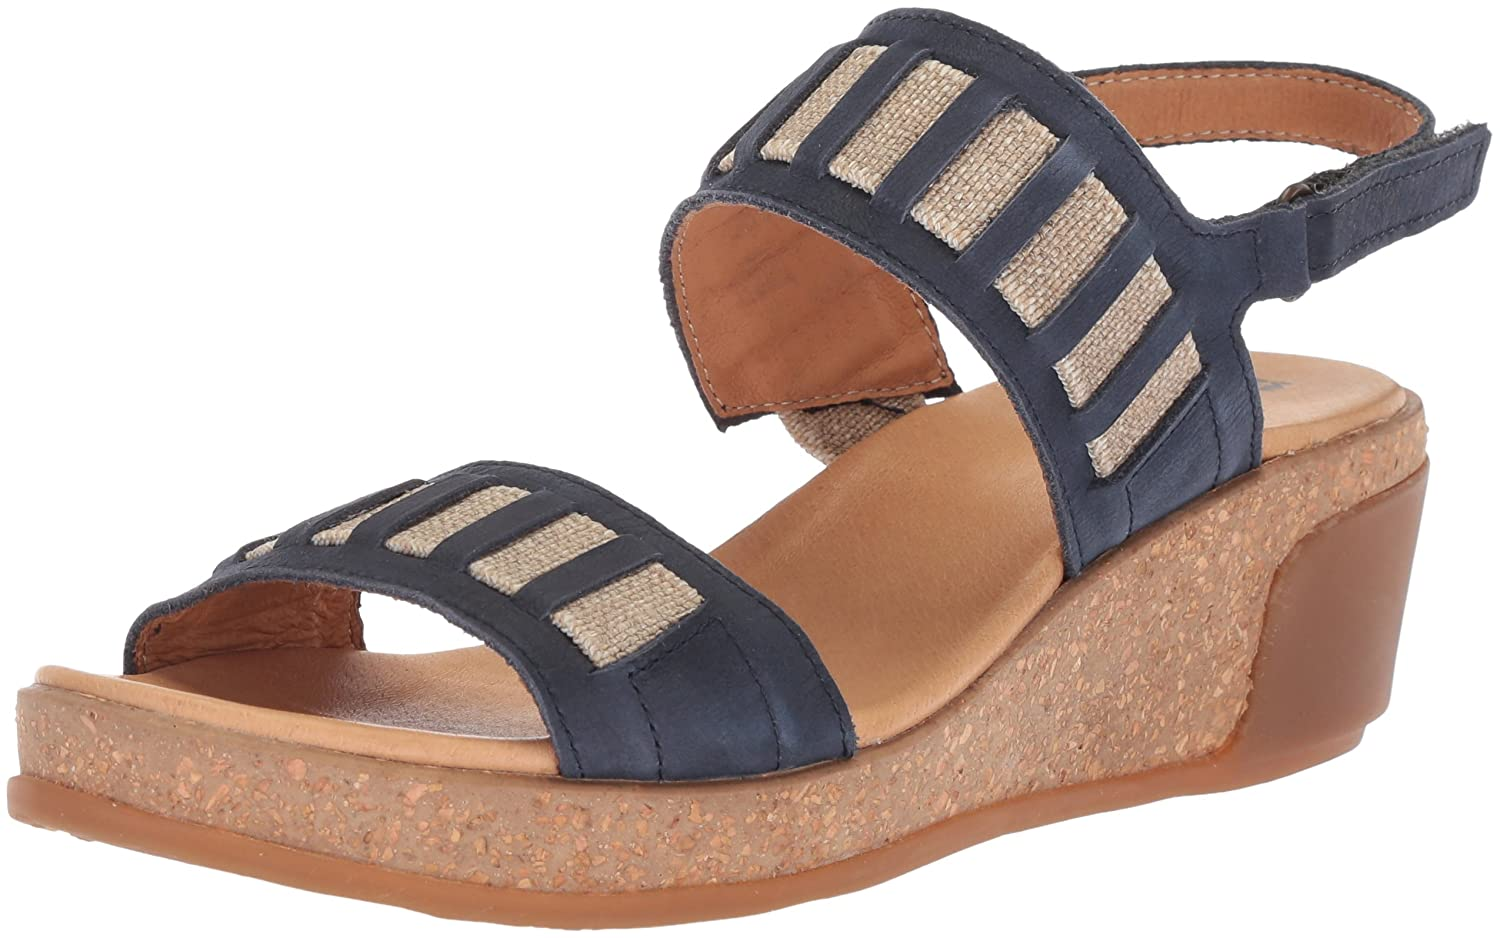 El Naturalista Women's N5006 Pleasant Ocean/Leaves Wedge Sandal B075LMR5NS 39 Medium EU (8.5 US)|Ocean